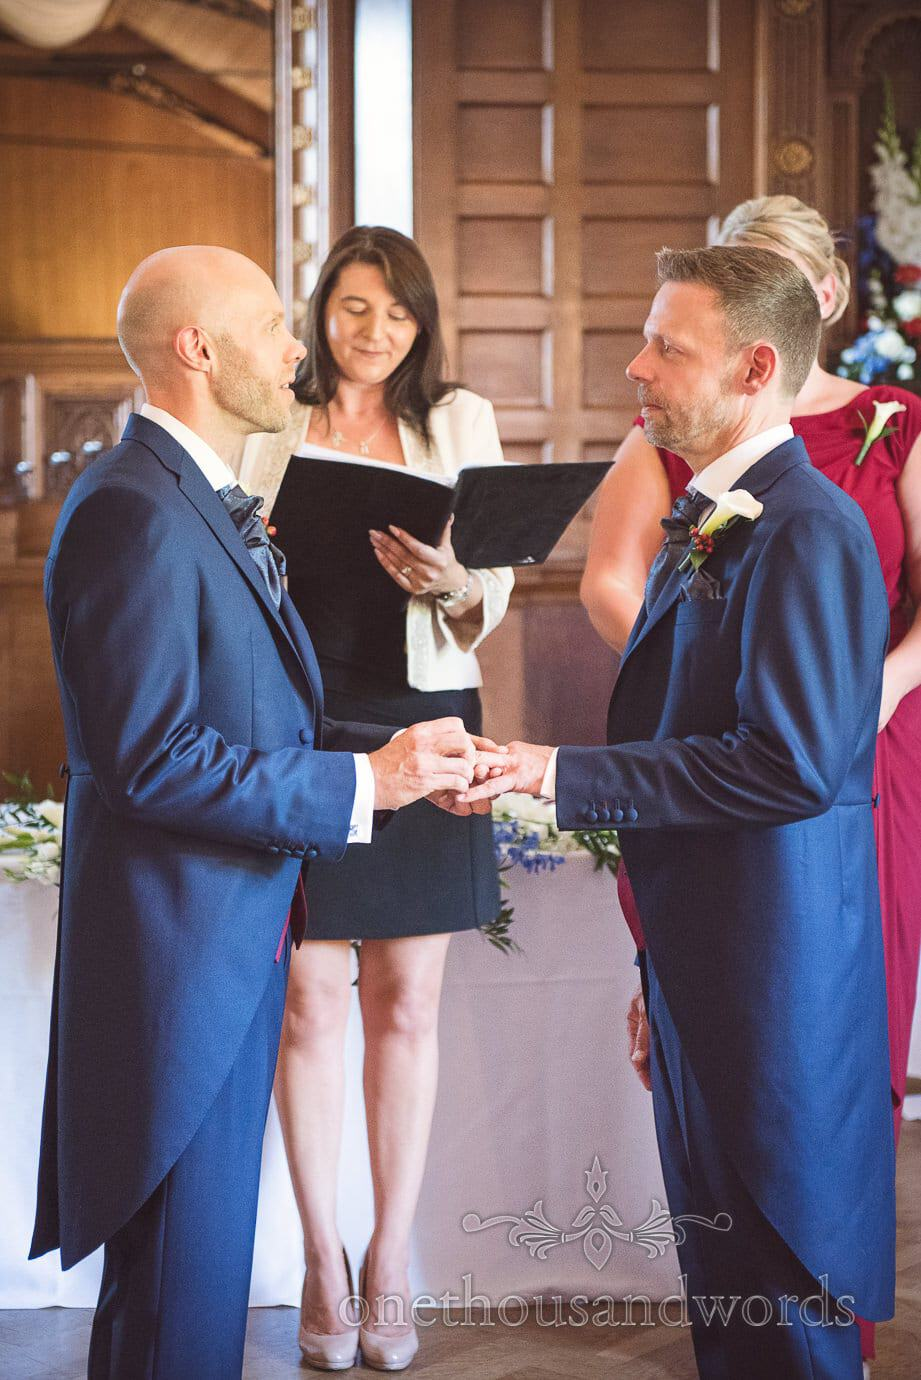 Same sex wedding exchange of rings at Purbeck House Hotel wedding ceremony